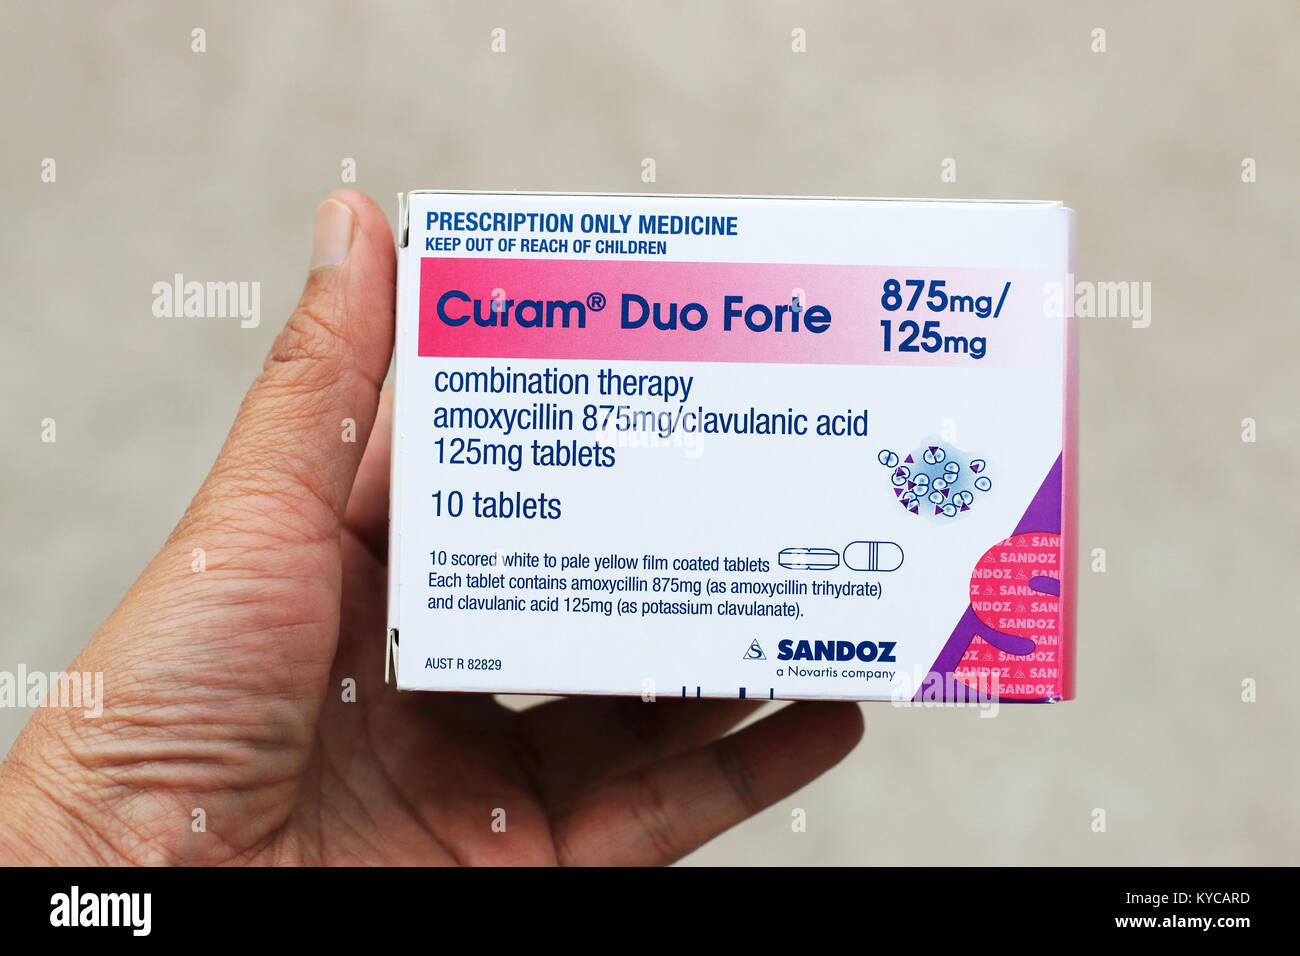 Curam Duo Forte isolated - Stock Image